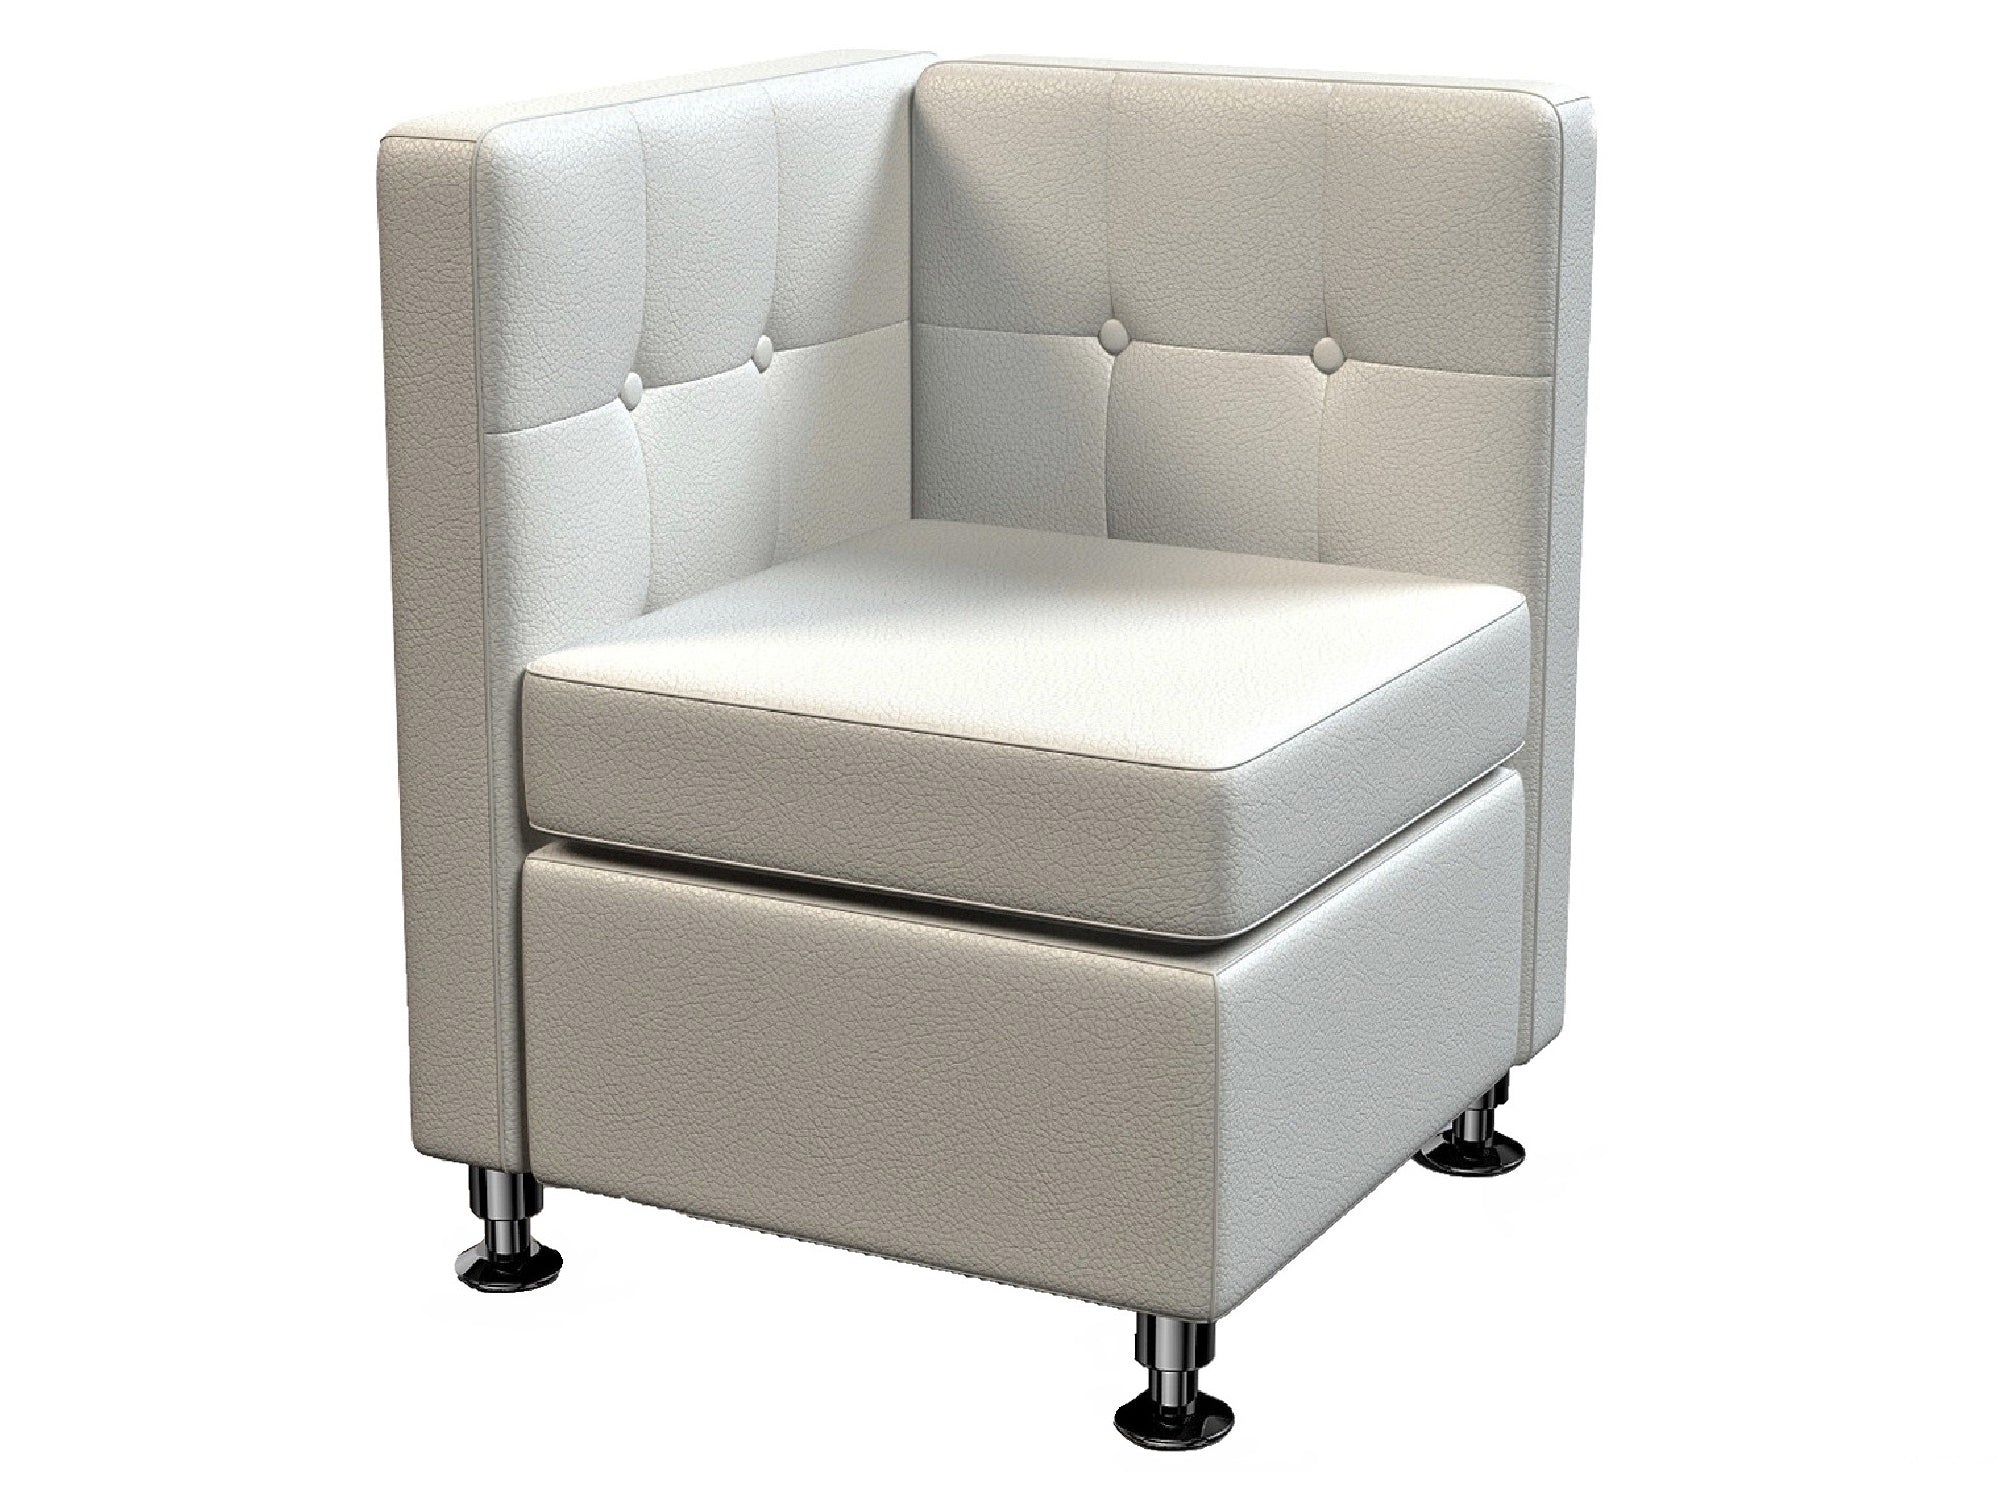 CLUB CORNER SOFA SECTION - WHITE